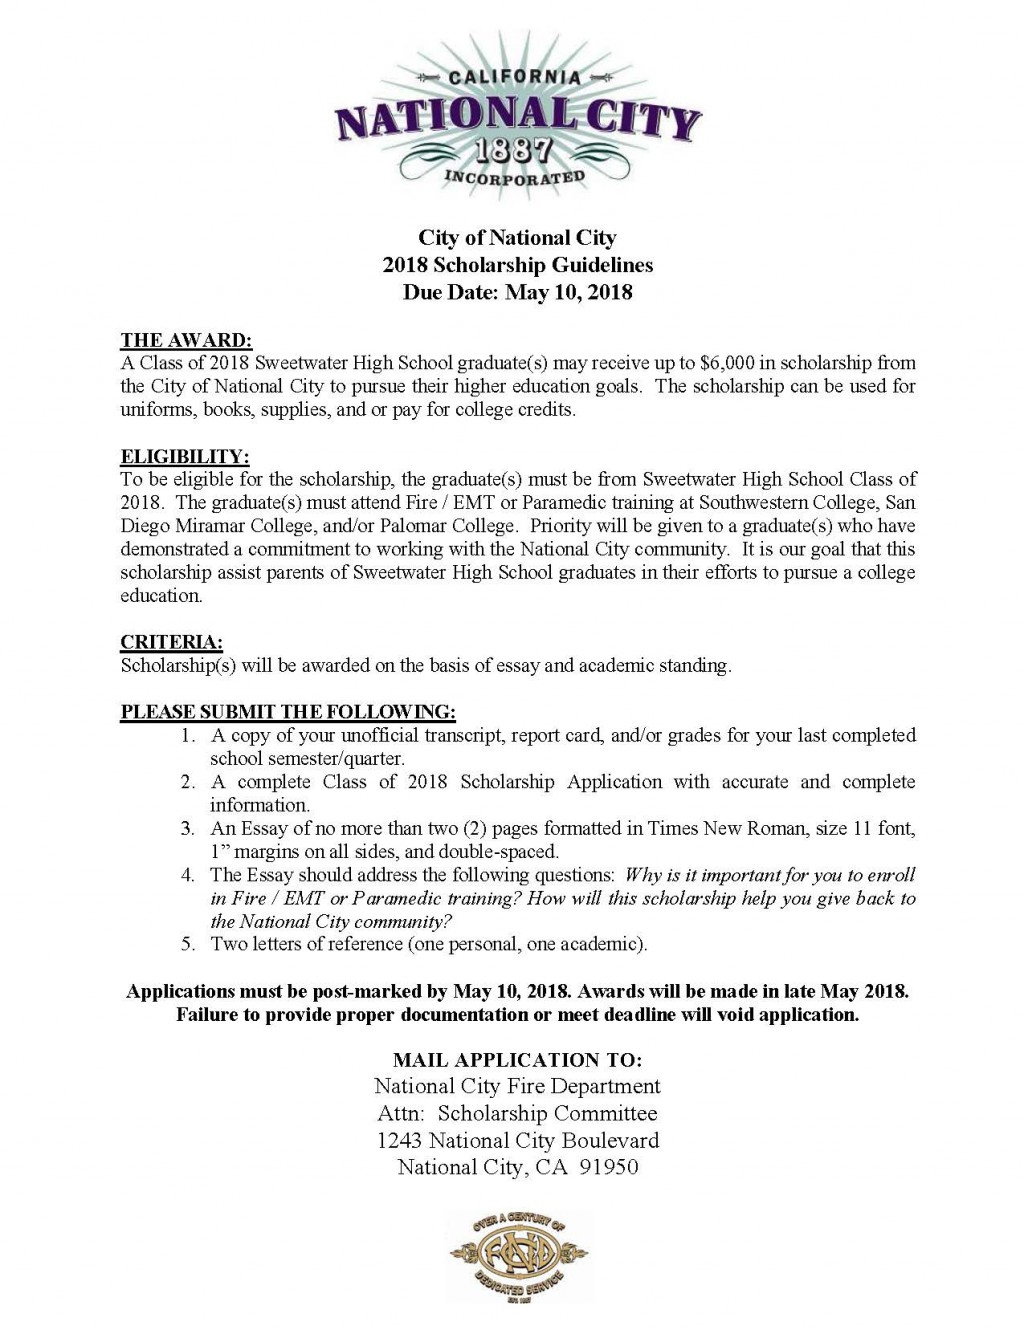 019 No Essay Scholarships For College Students Example Get National City Showimageid4967t6365912738803 Awful 2019 Large